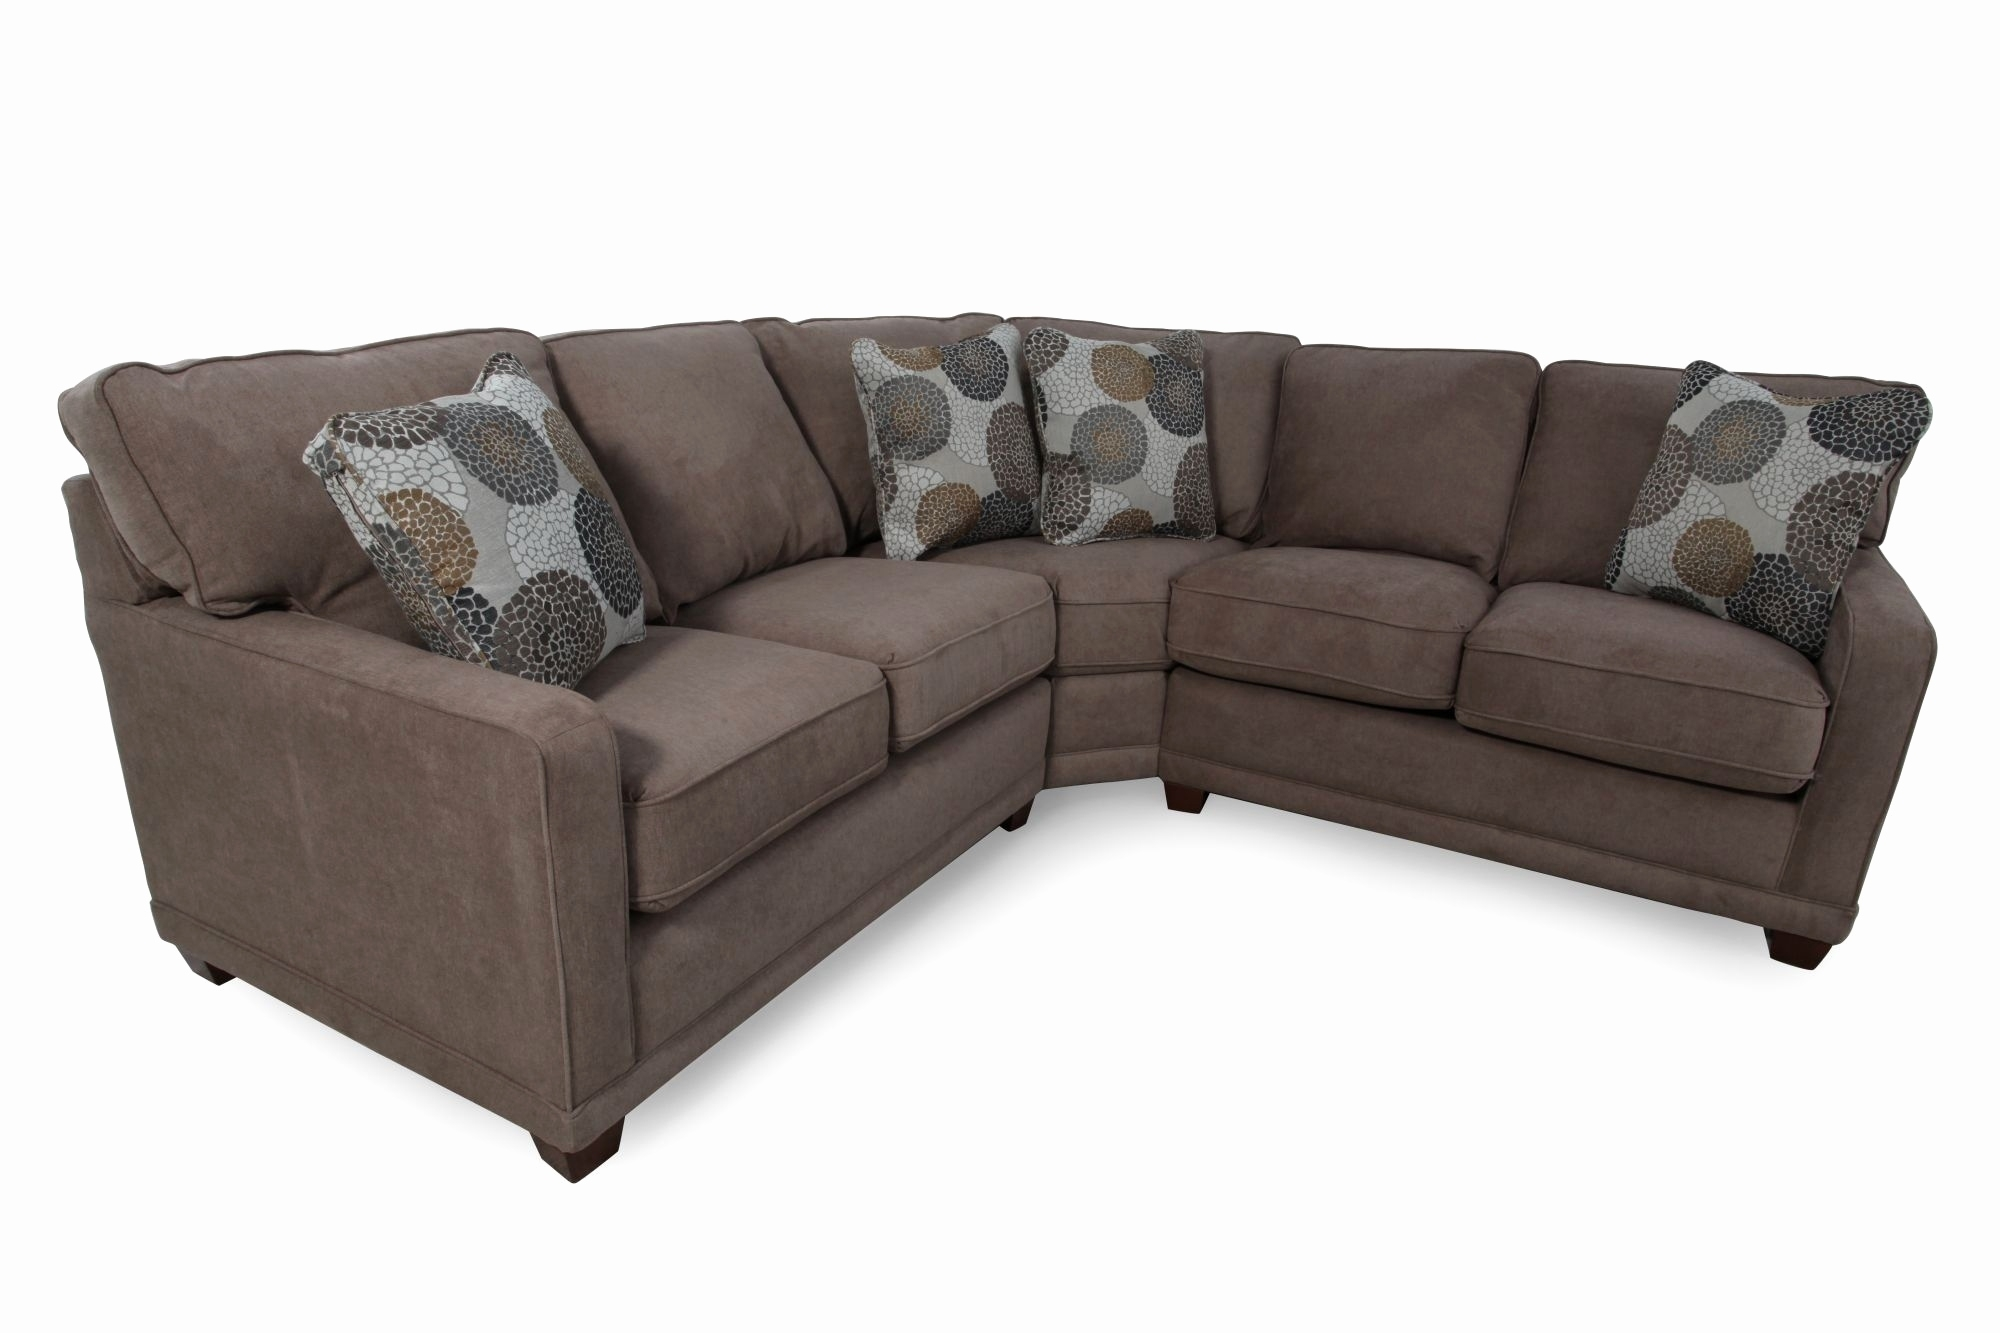 Beautiful Lazy Boy Leather Sectional Sofas 2018 – Couches Ideas within Sectional Sofas At Lazy Boy (Image 3 of 15)